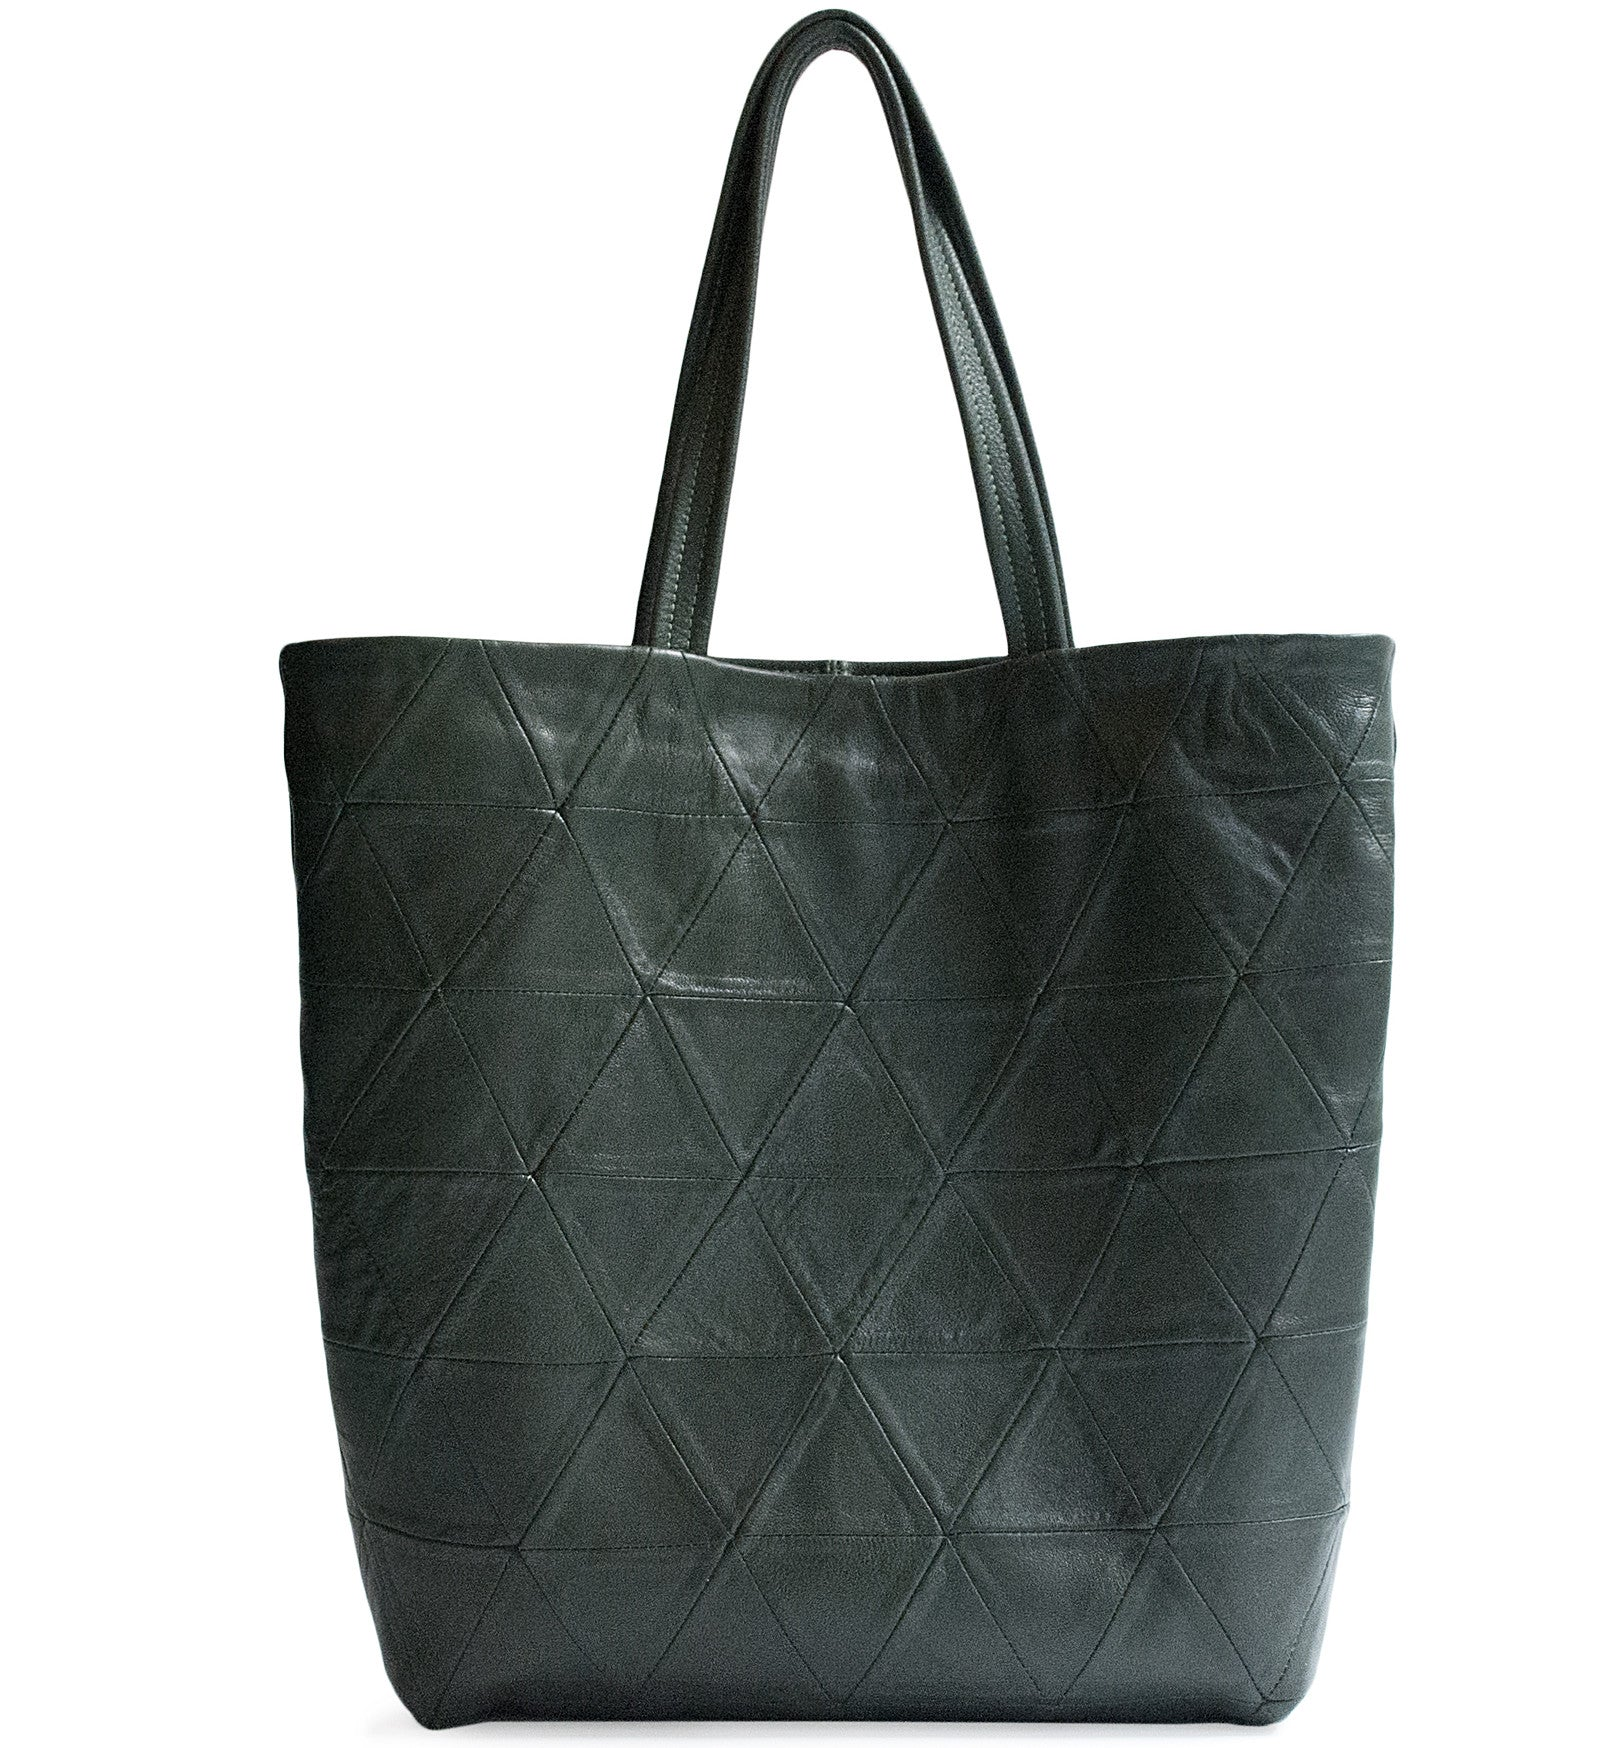 Triangle Patchwork Tote Dark Green leather Wendy Nichol Handbag purse Bag Designer Handmade in NYC